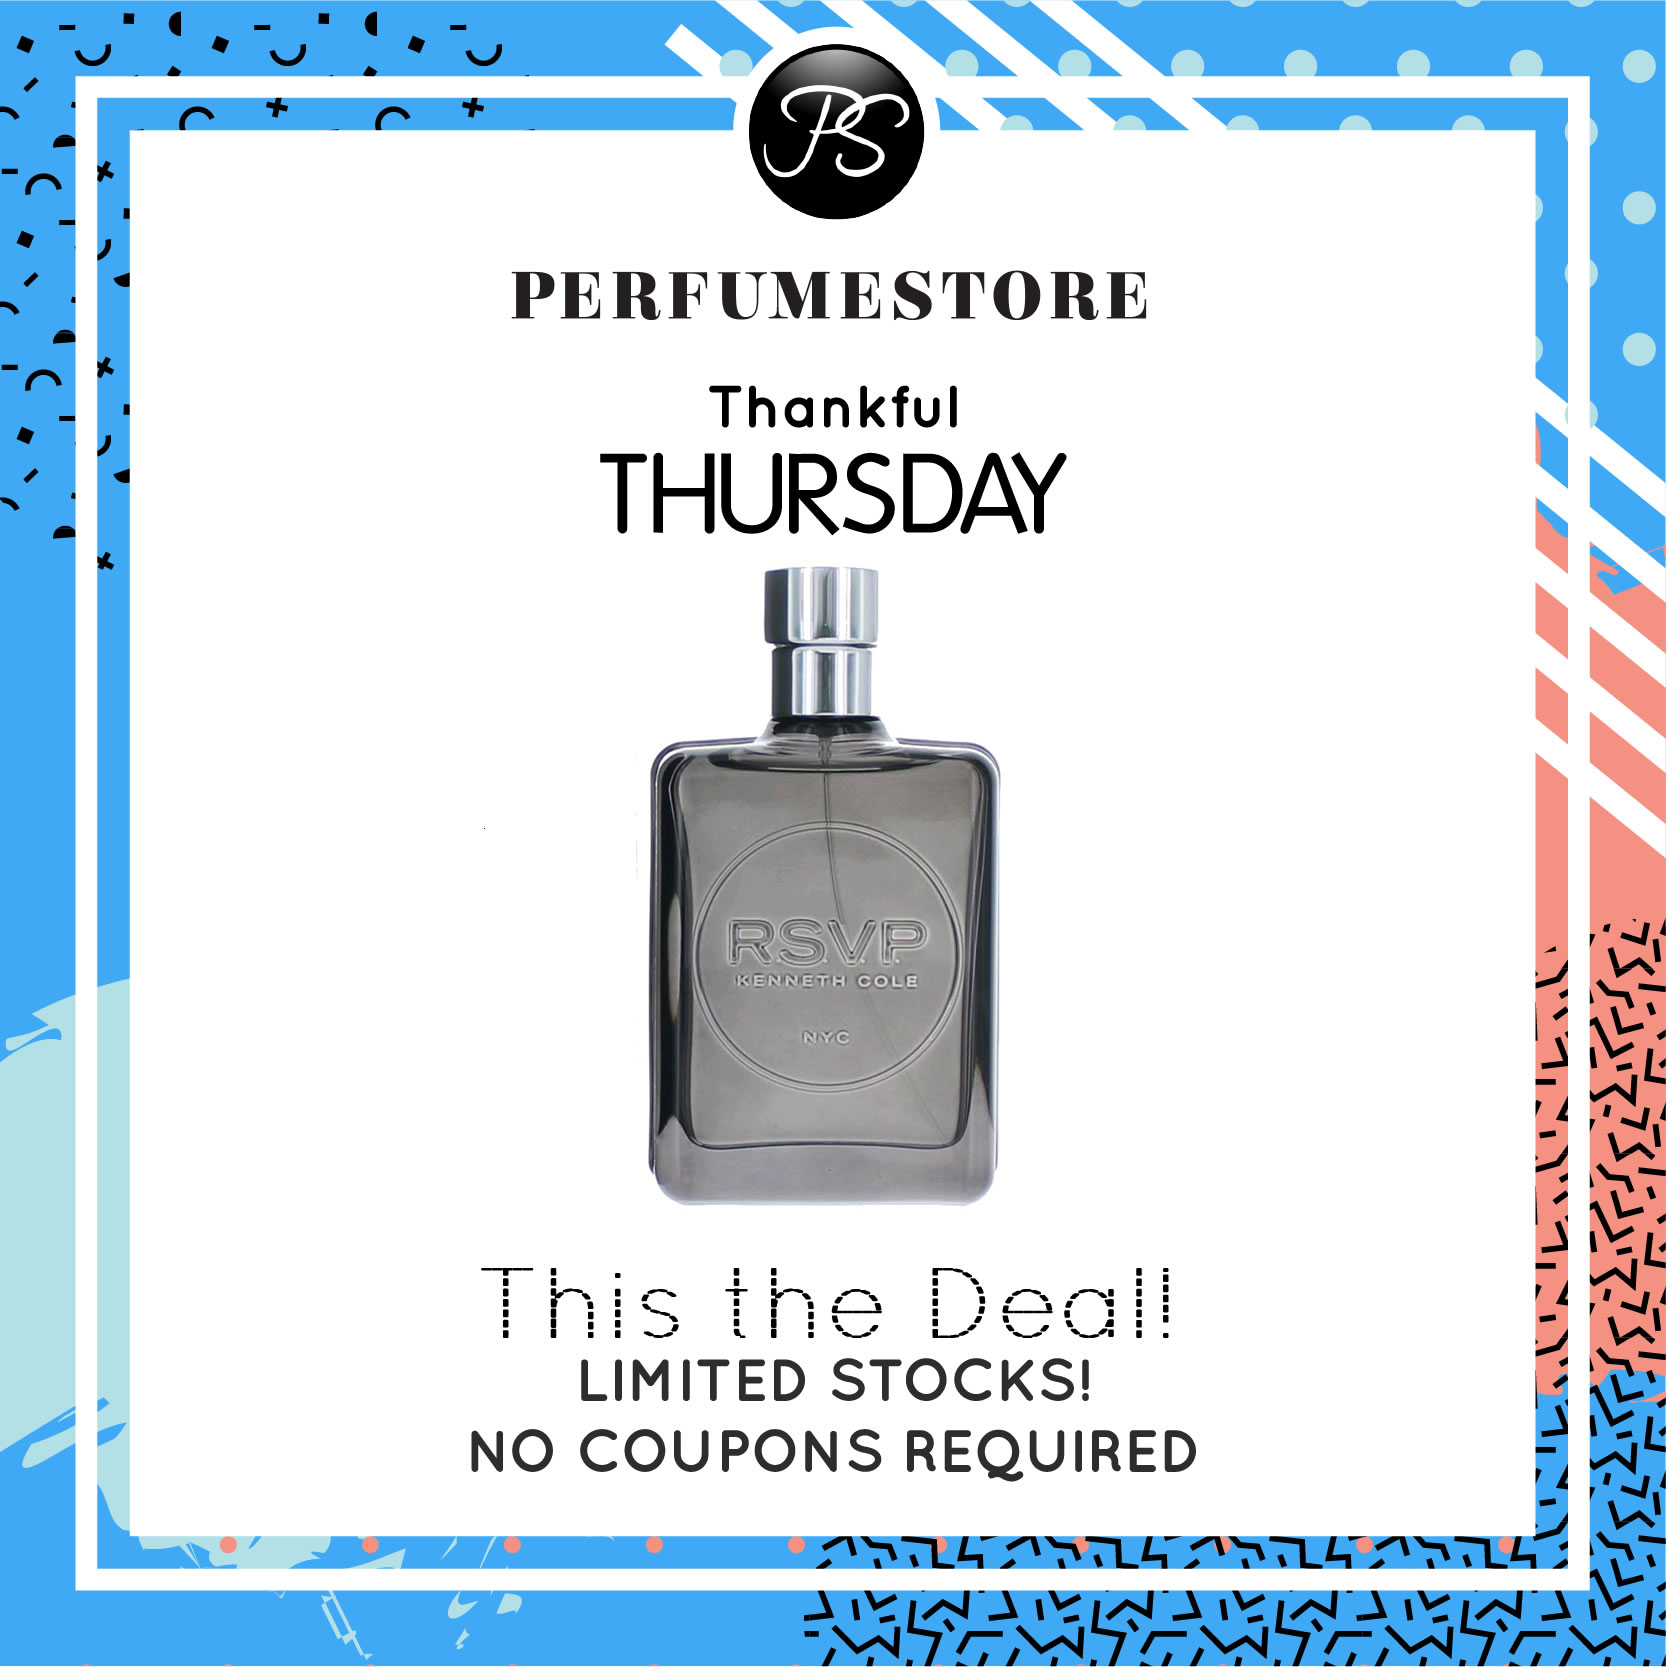 KENNETH COLE RSVP EDT FOR MEN 100ML [THANKFUL THURSDAY SPECIAL]